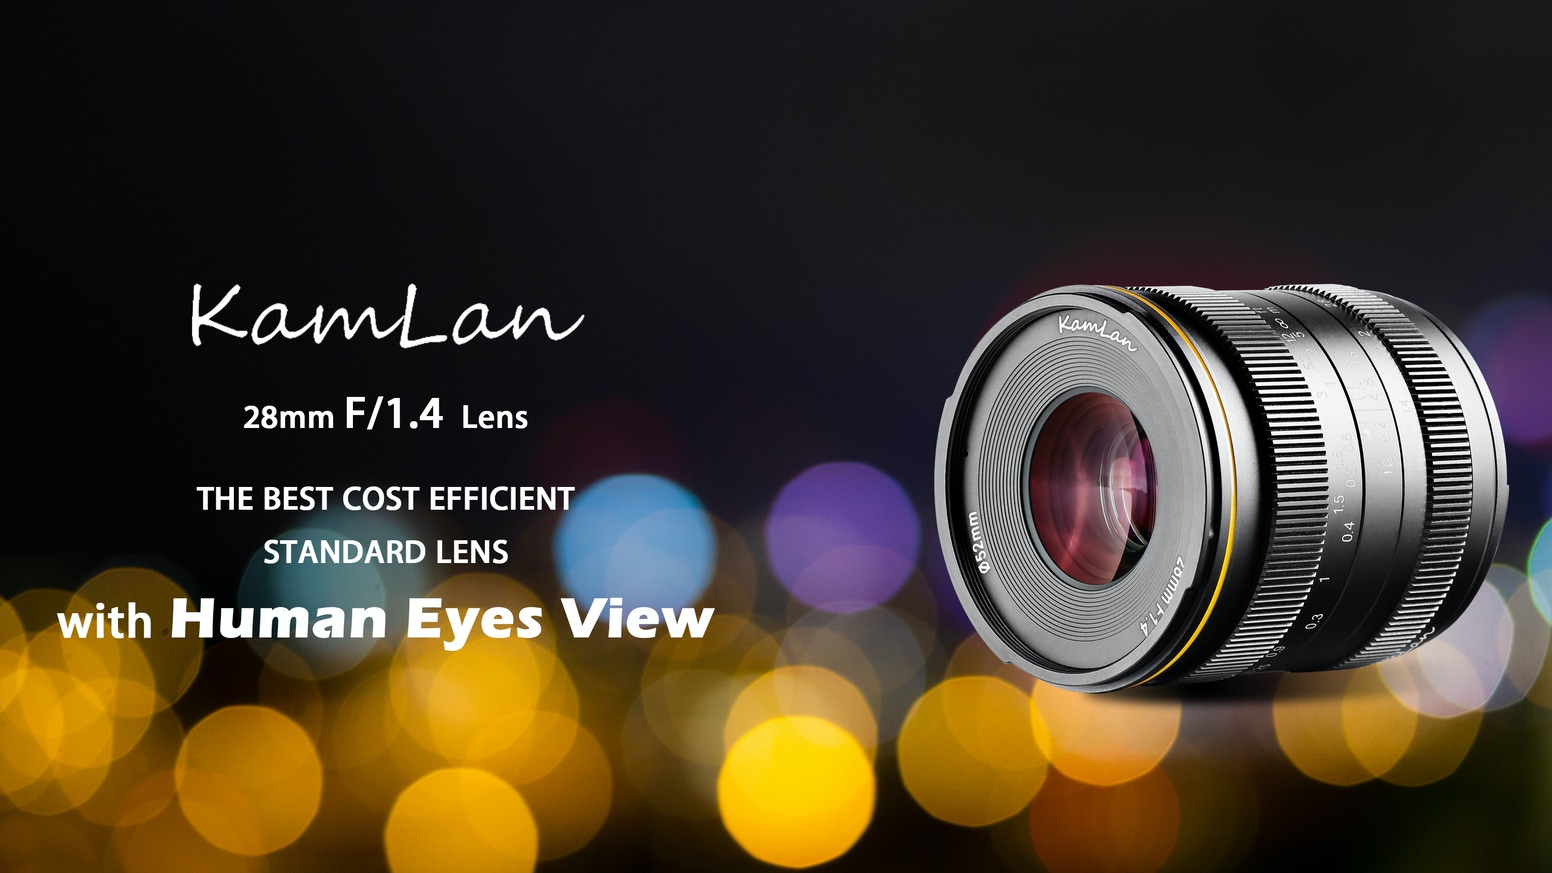 Kamlan 28mm F/1.4 Standard Prime Lens for Mirrorless Cameras is the top crowdfunding project launched today. Kamlan 28mm F/1.4 Standard Prime Lens for Mirrorless Cameras raised over $87286 from 487 backers. Other top projects include MURDER BY DEATH'S NEW ALBUM